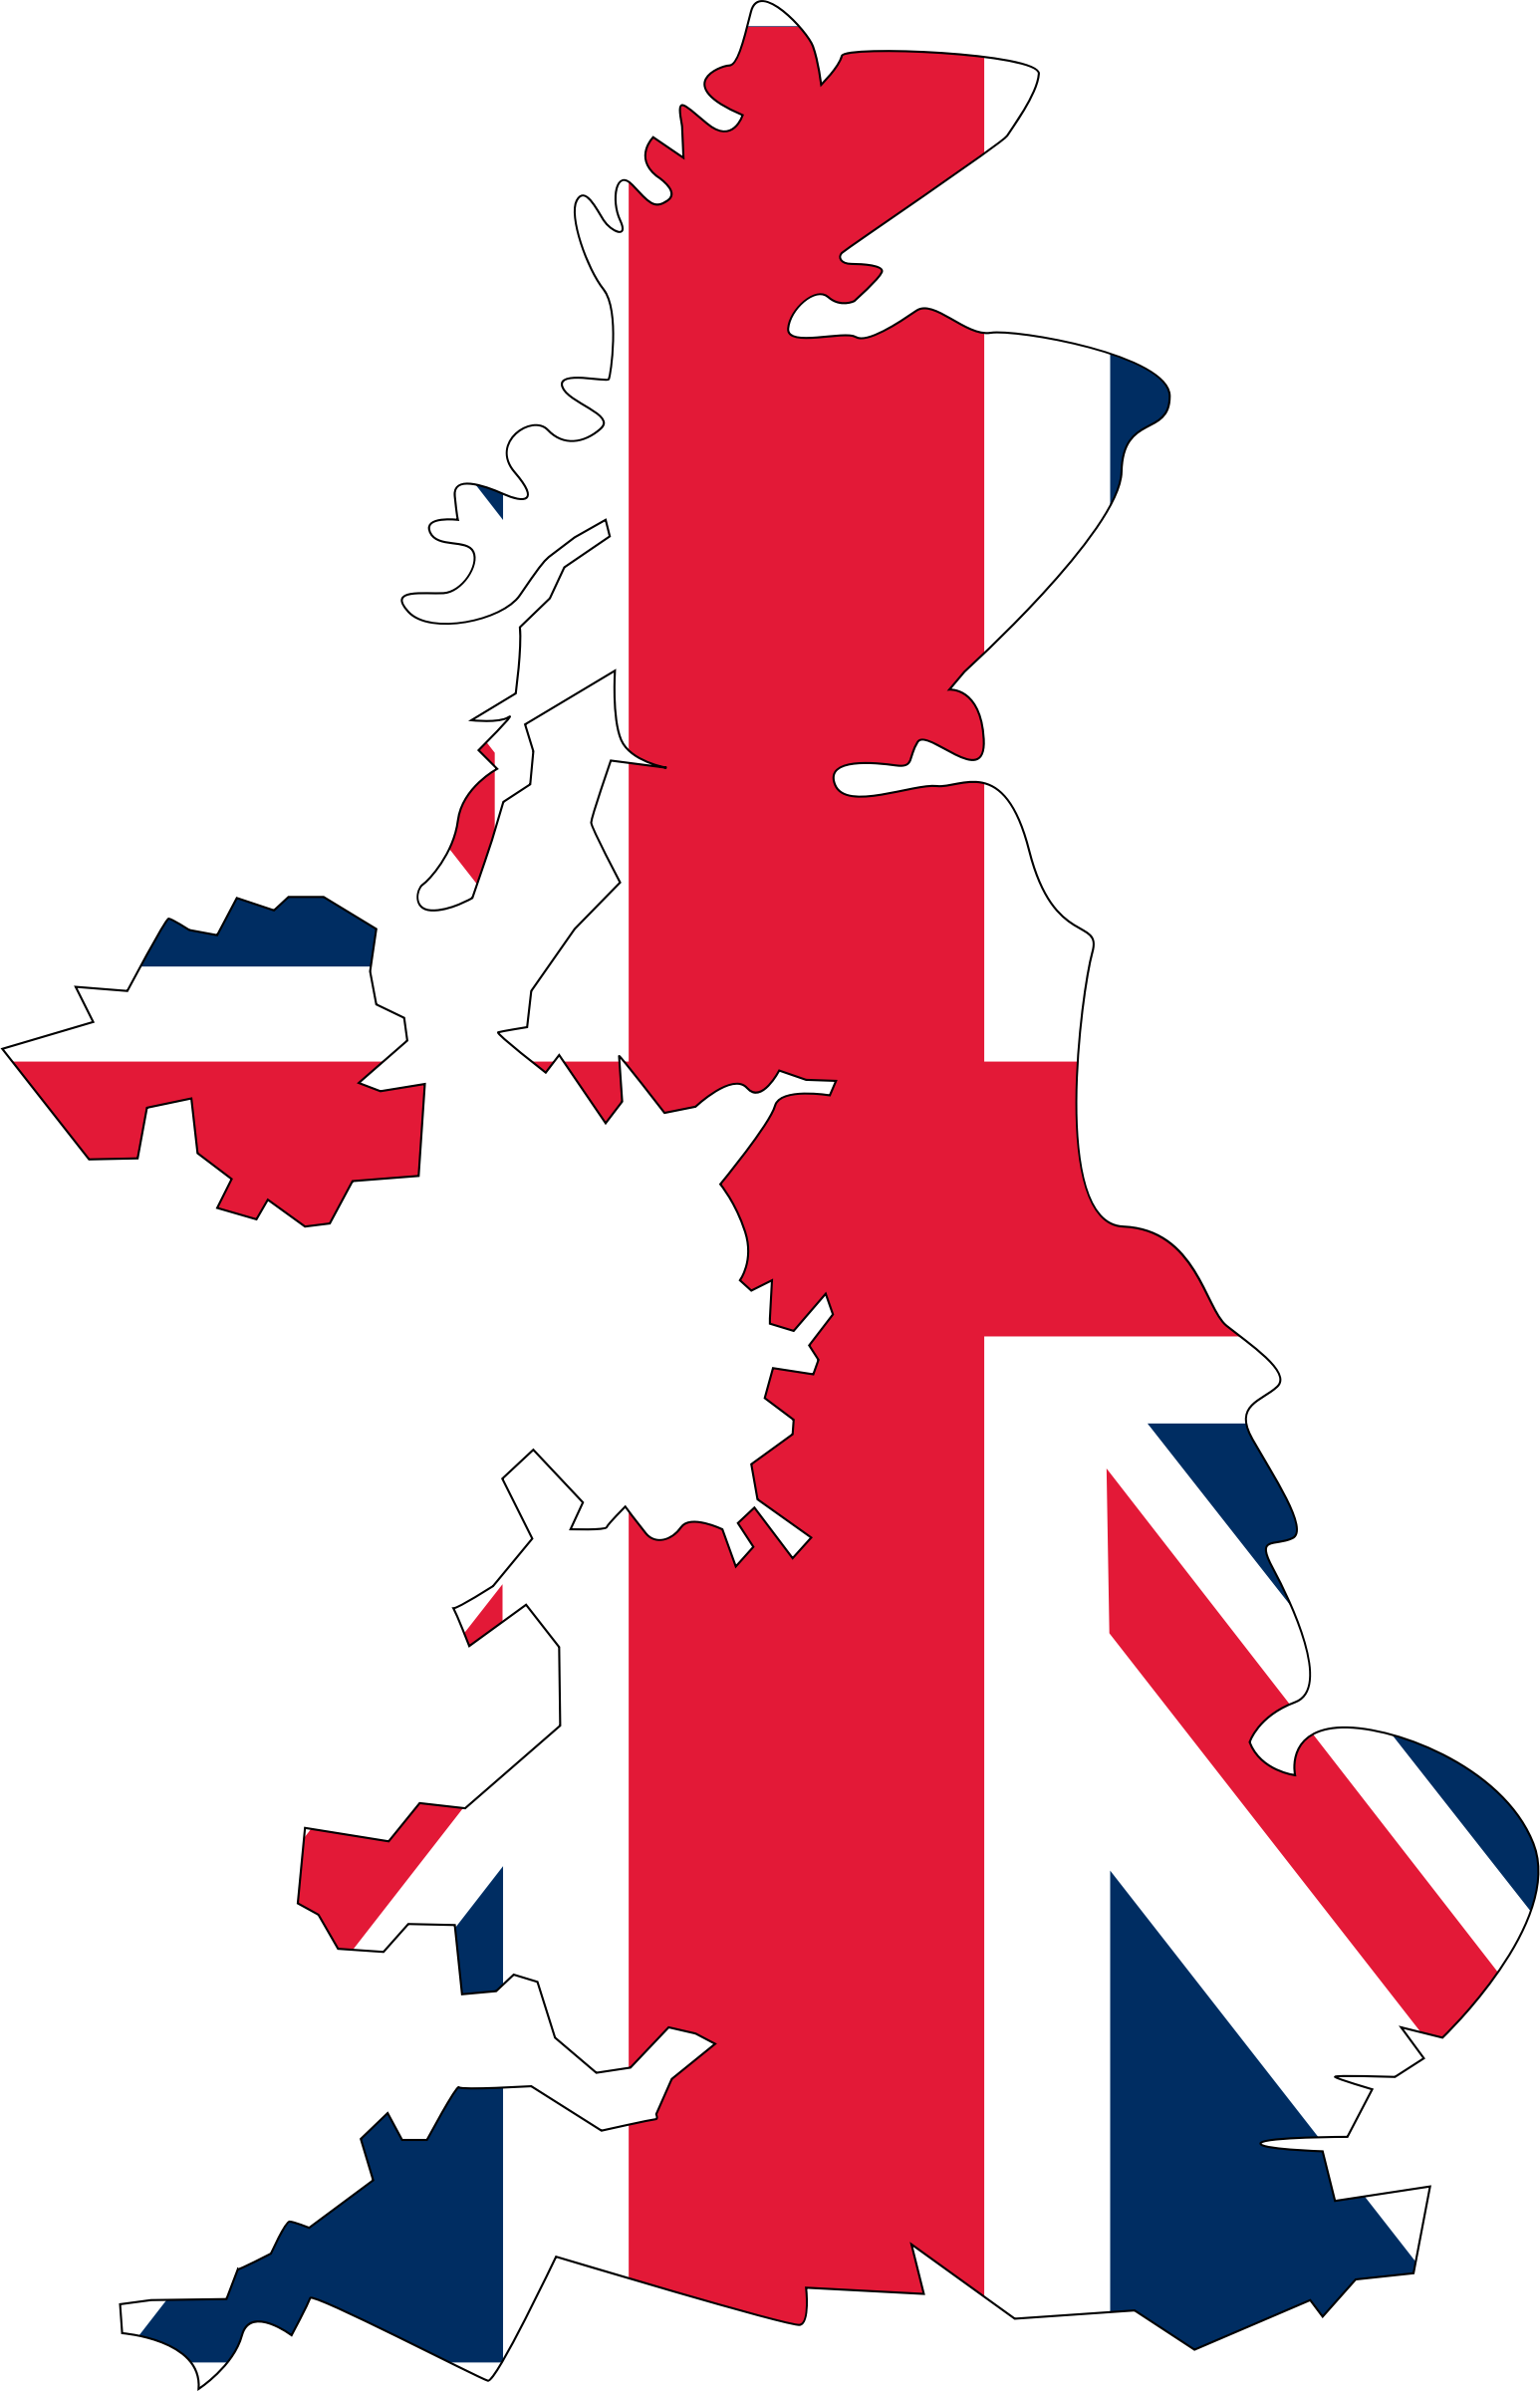 Queen clipart england clipart. United kingdom flag map